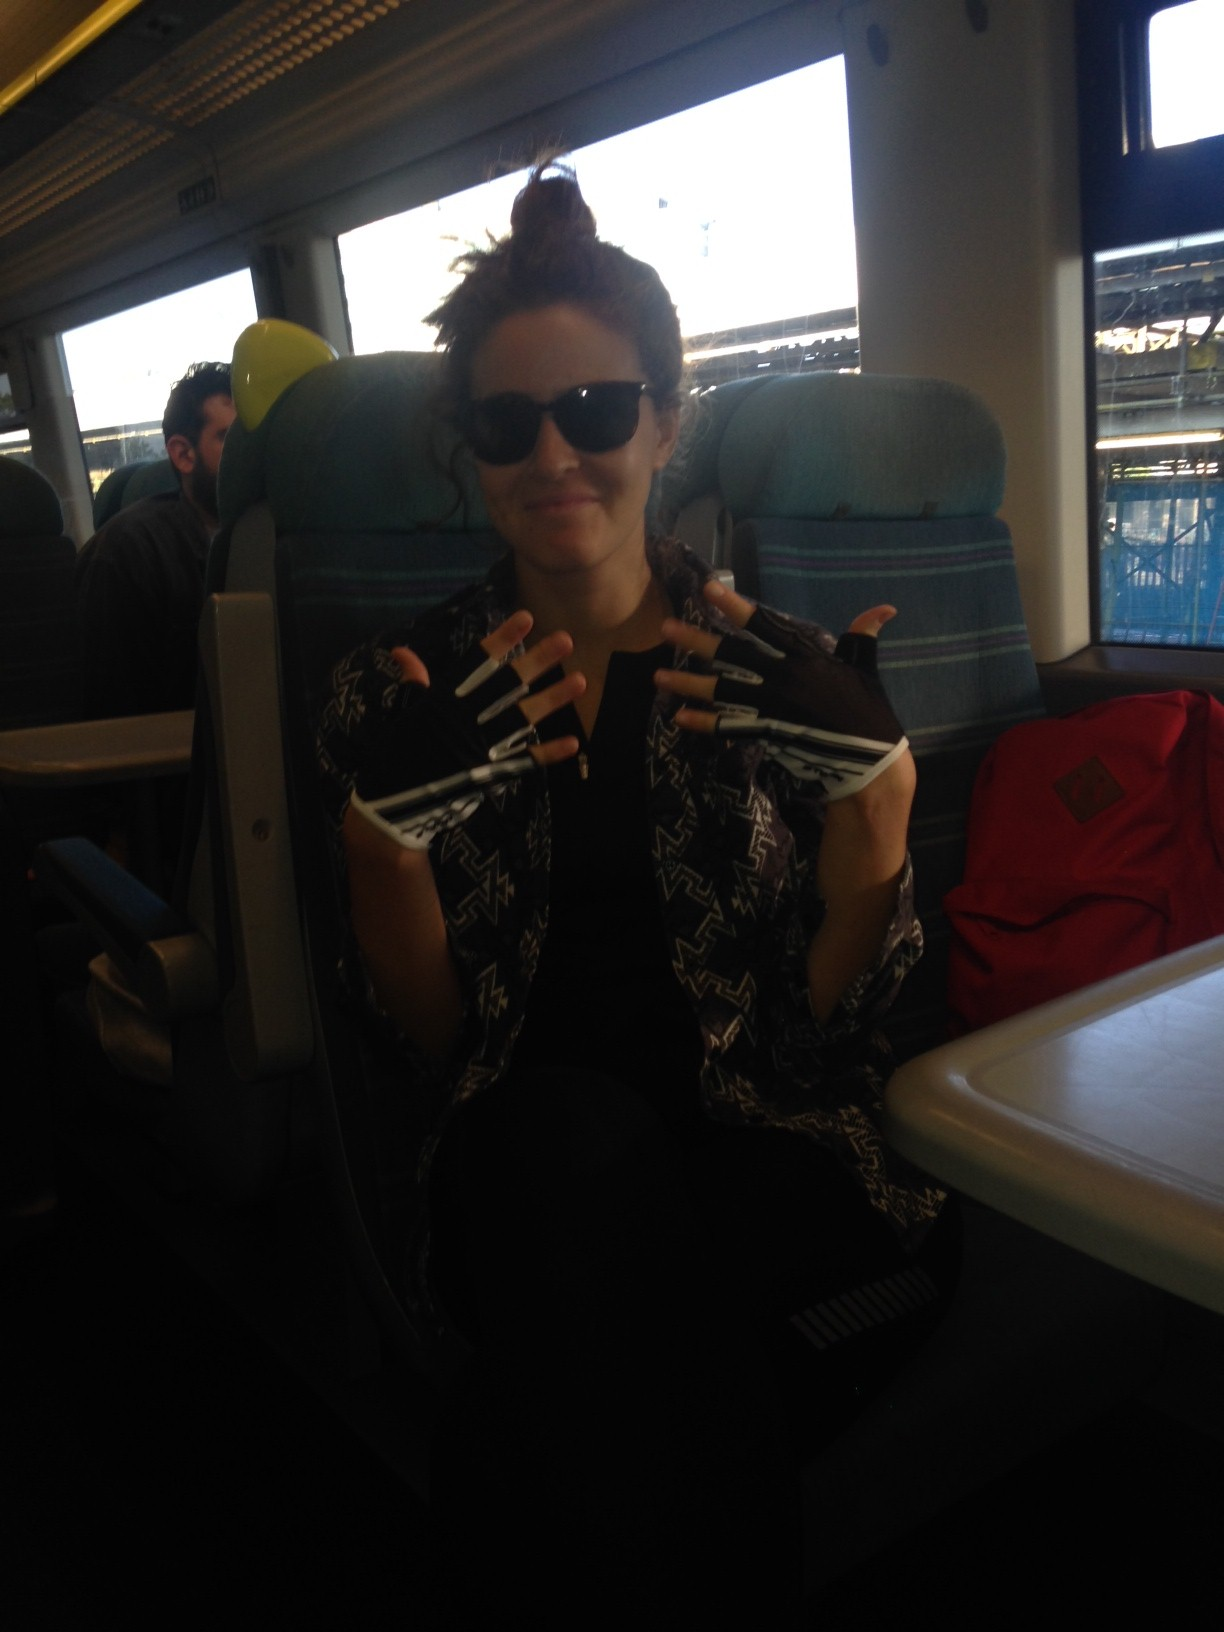 Natasha Whewell on the train to Kent